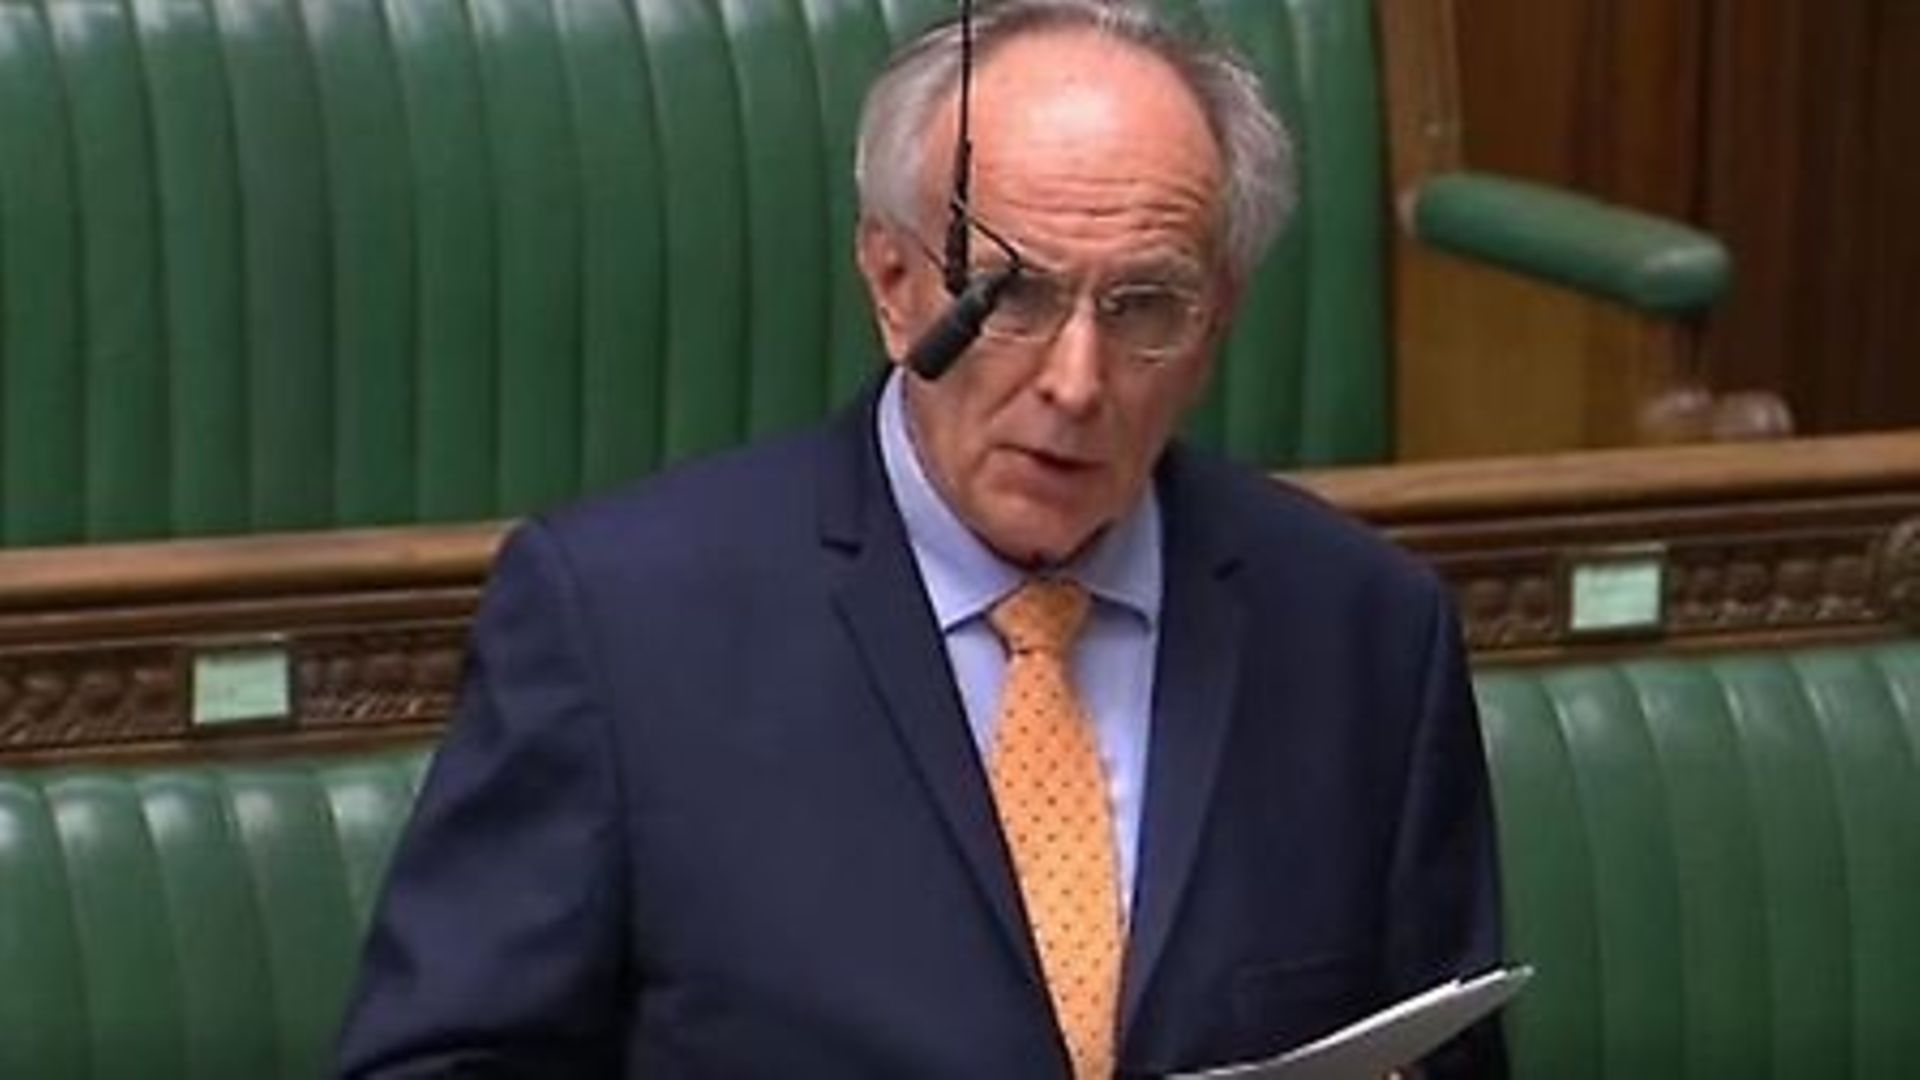 Peter Bone in the House of Commons - Credit: Parliament Live